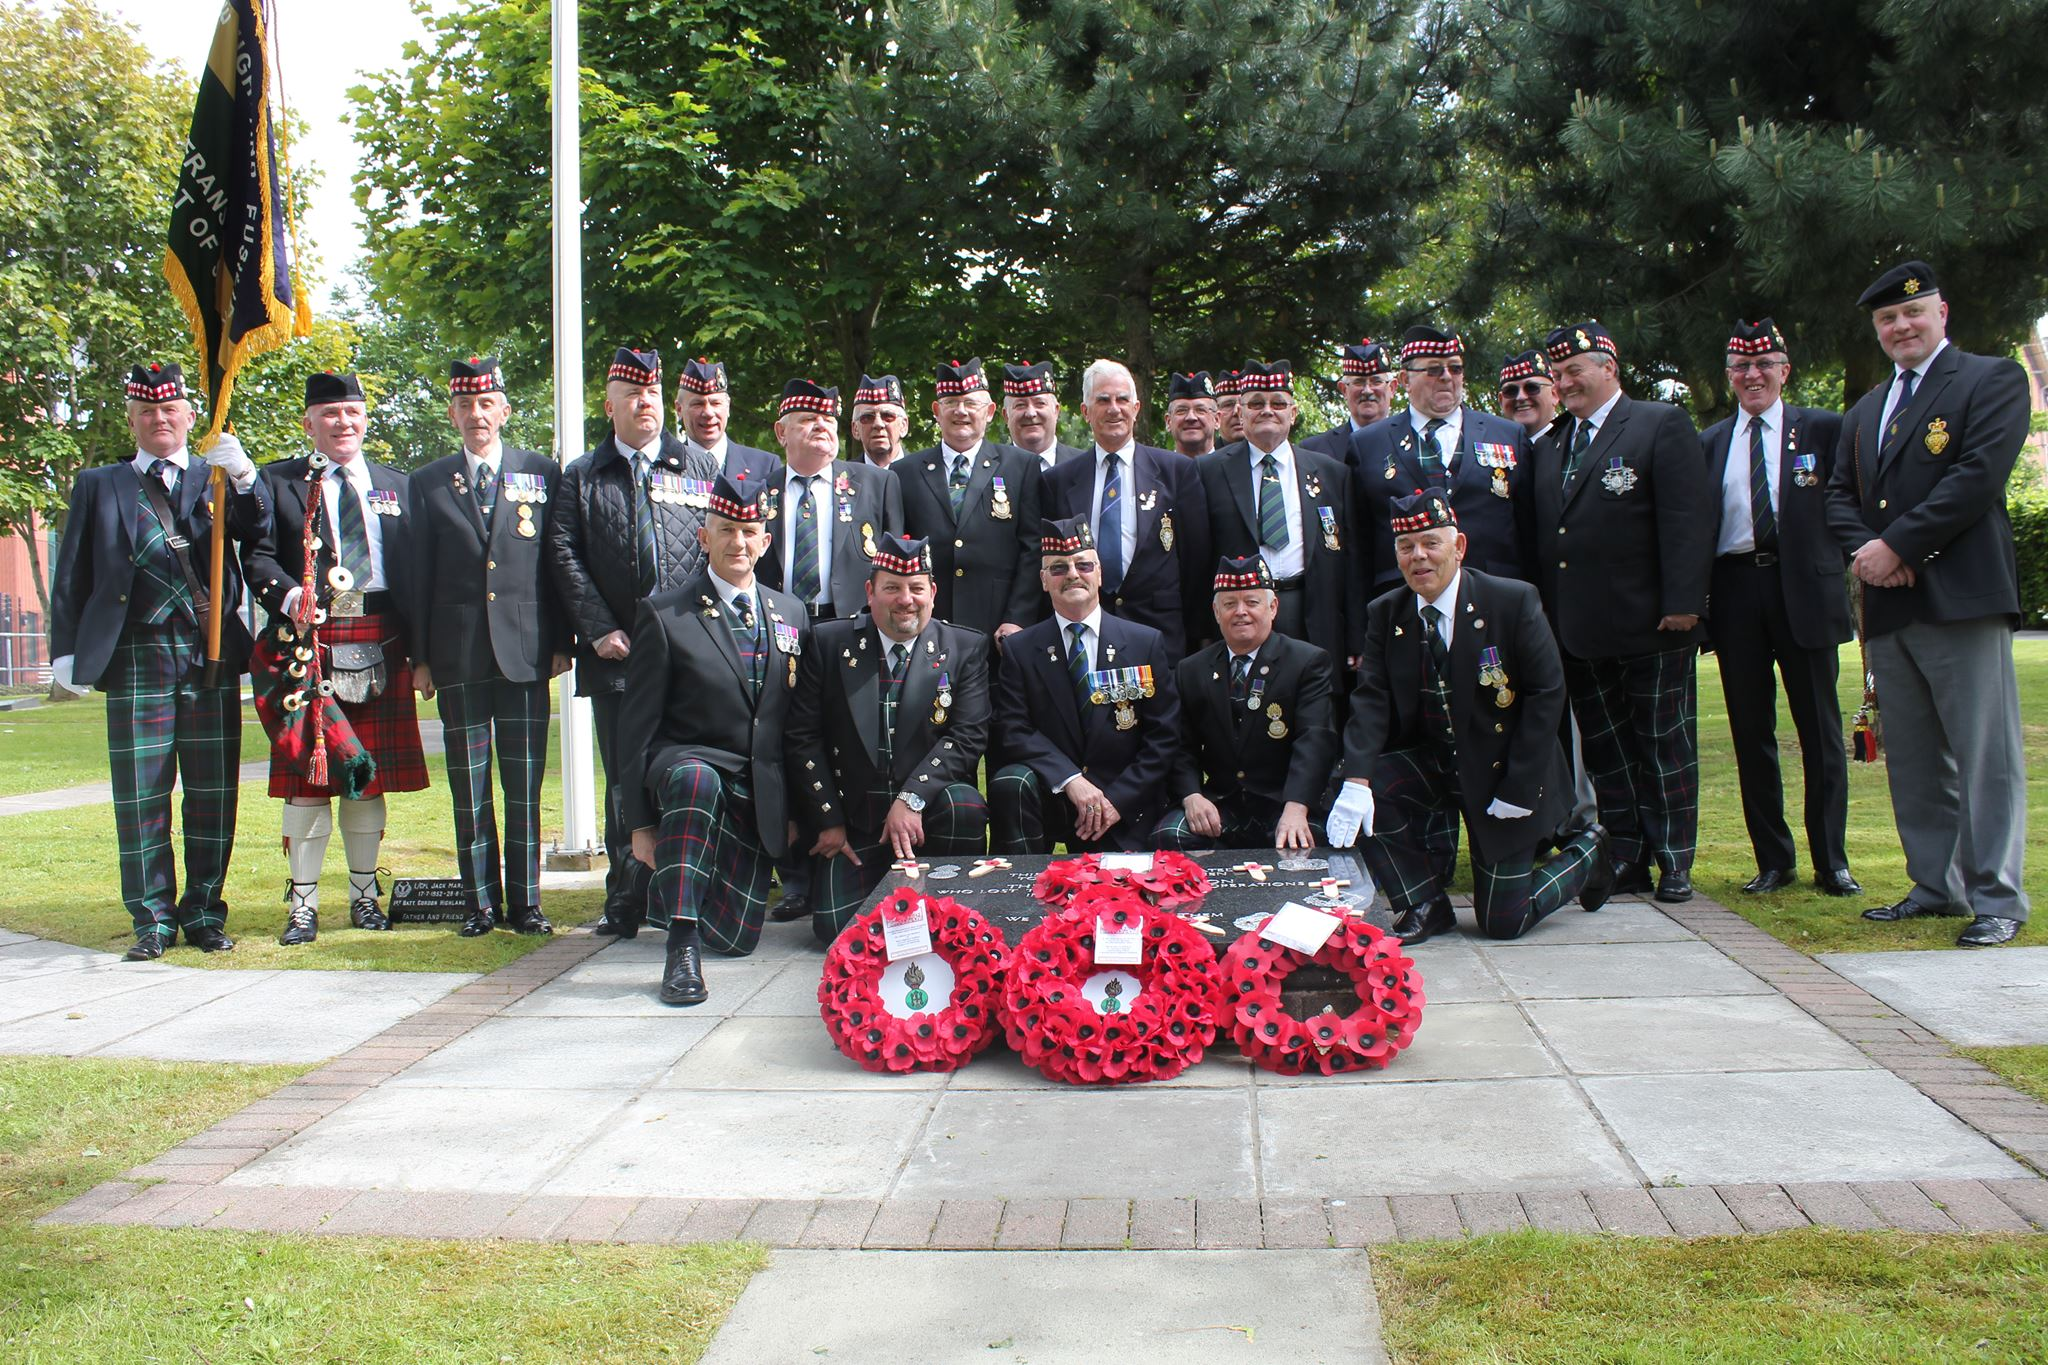 RHF Veterans visit the Memorial Garden to remember members of the 1st Bn killed in NI